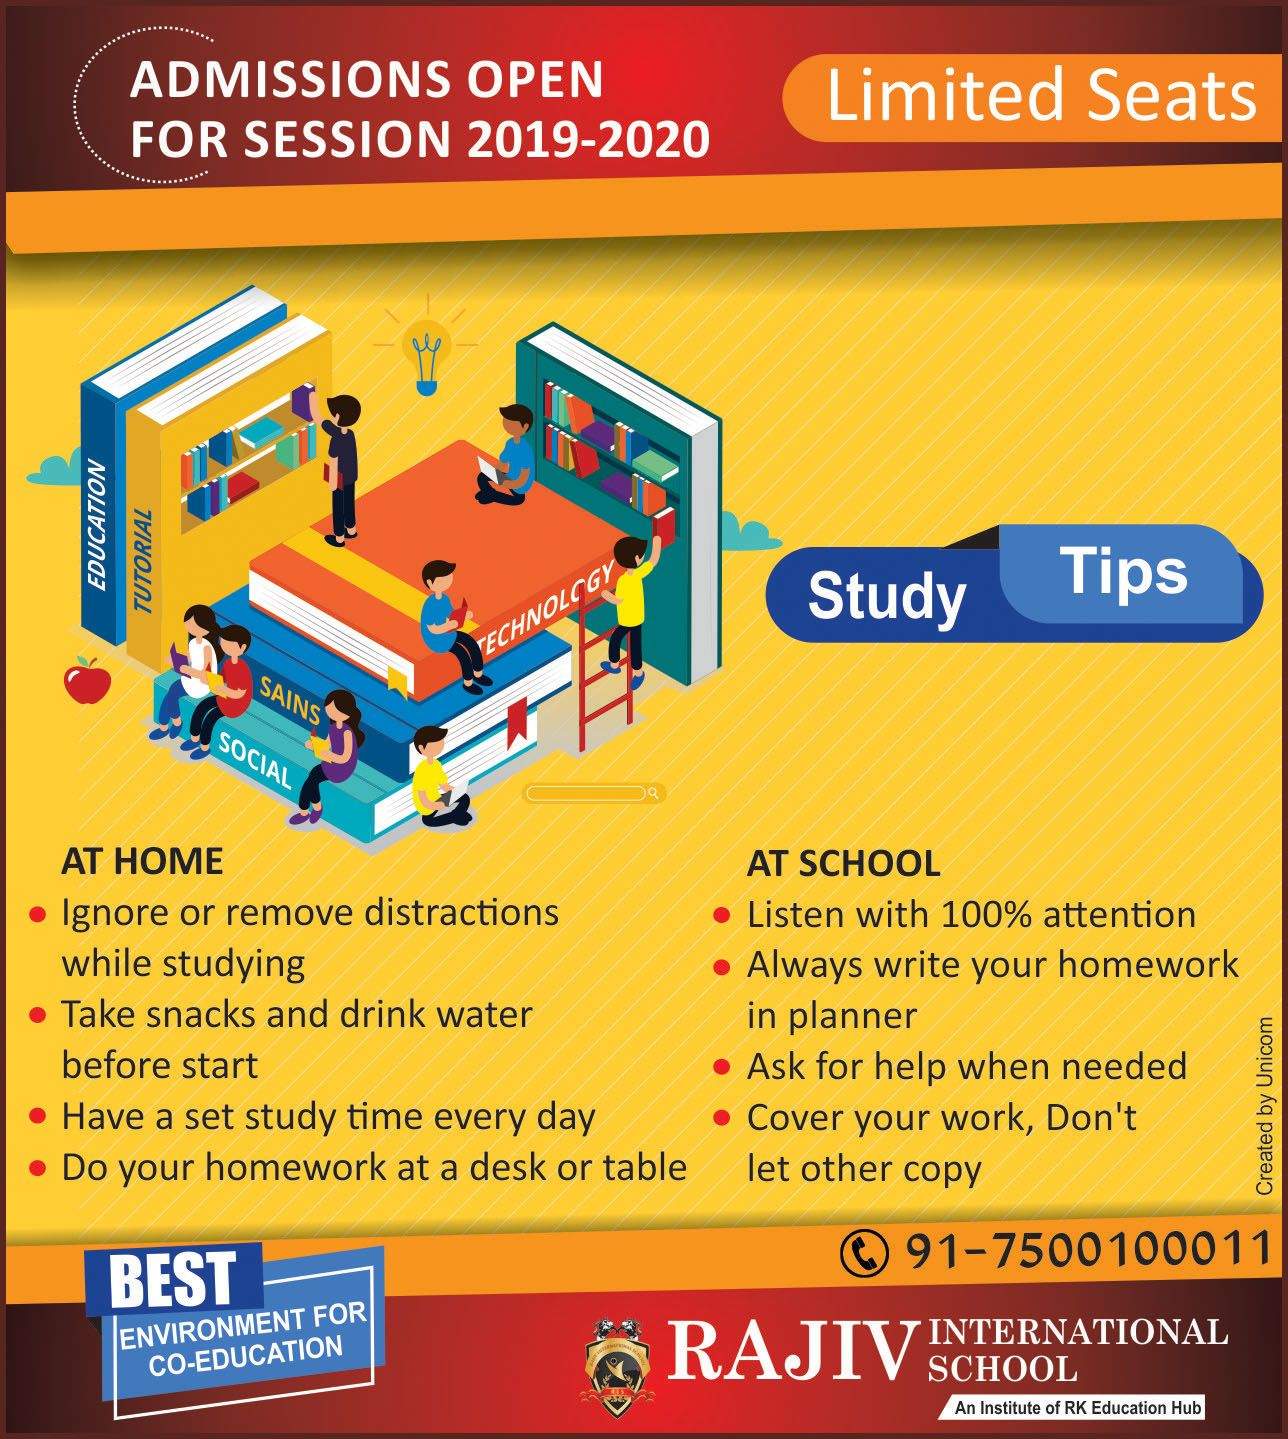 Essential study tips for final exams for admission related